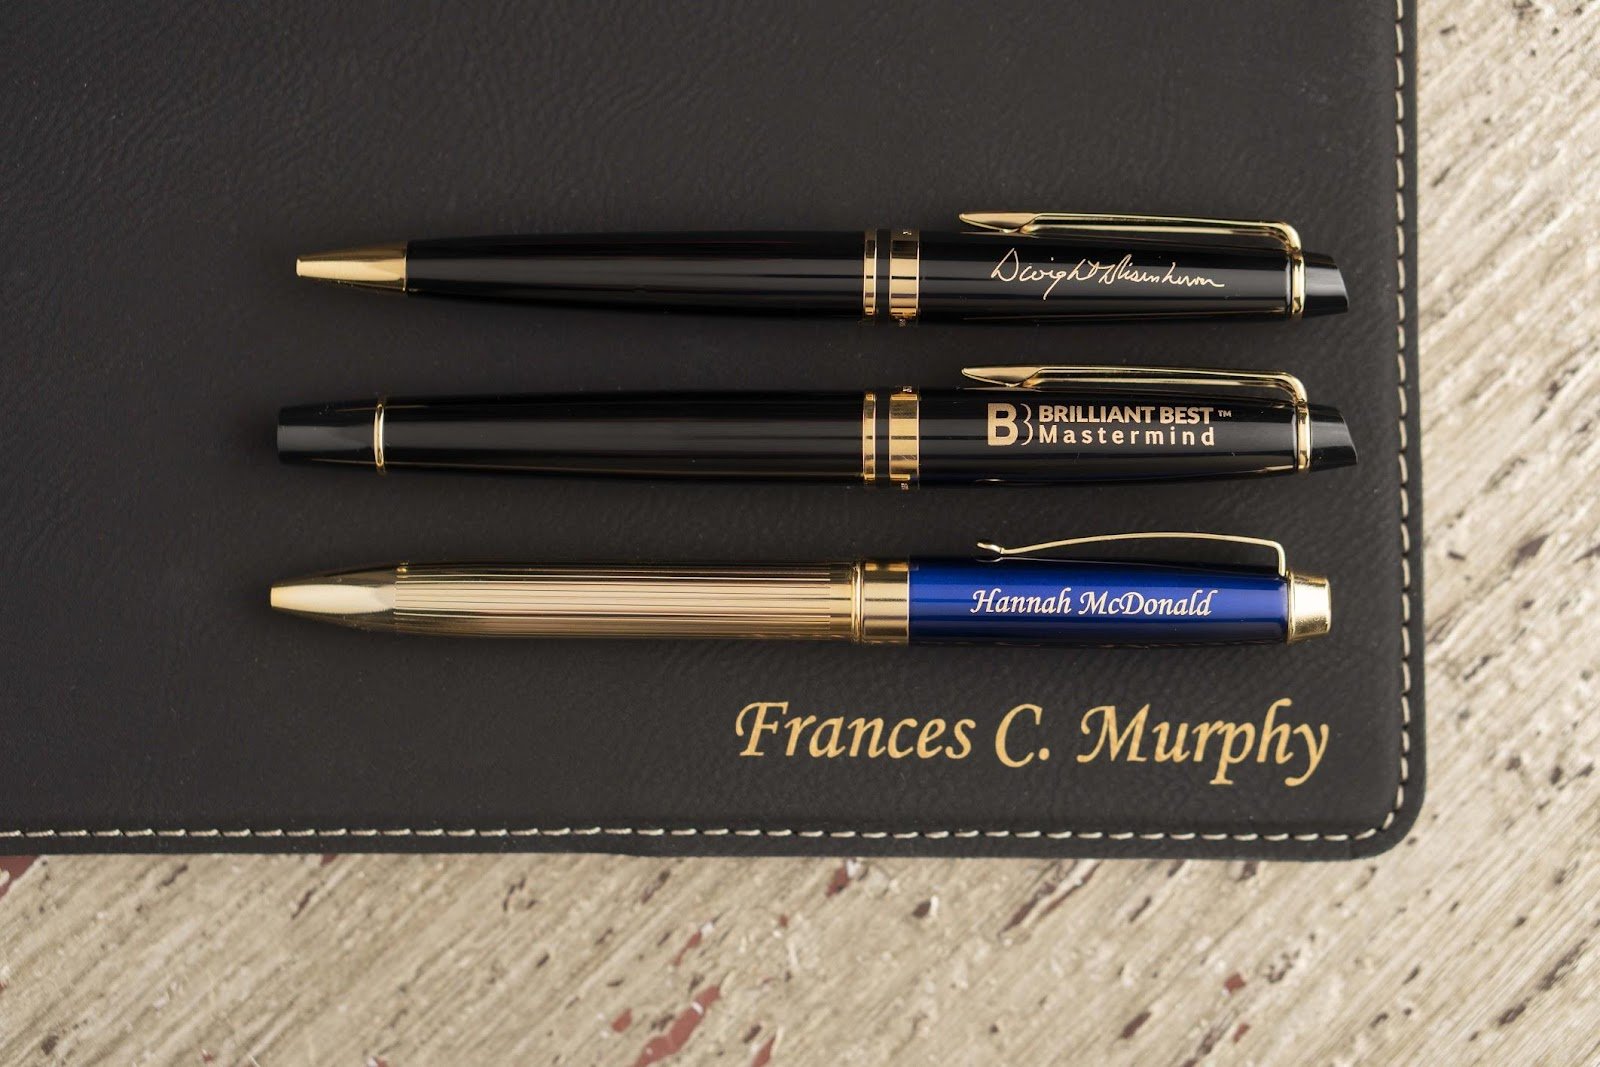 Two Waterman Expert pens—one with signature engraving, the other with a promotional logo engraving—rest on a custom engraved padfolio